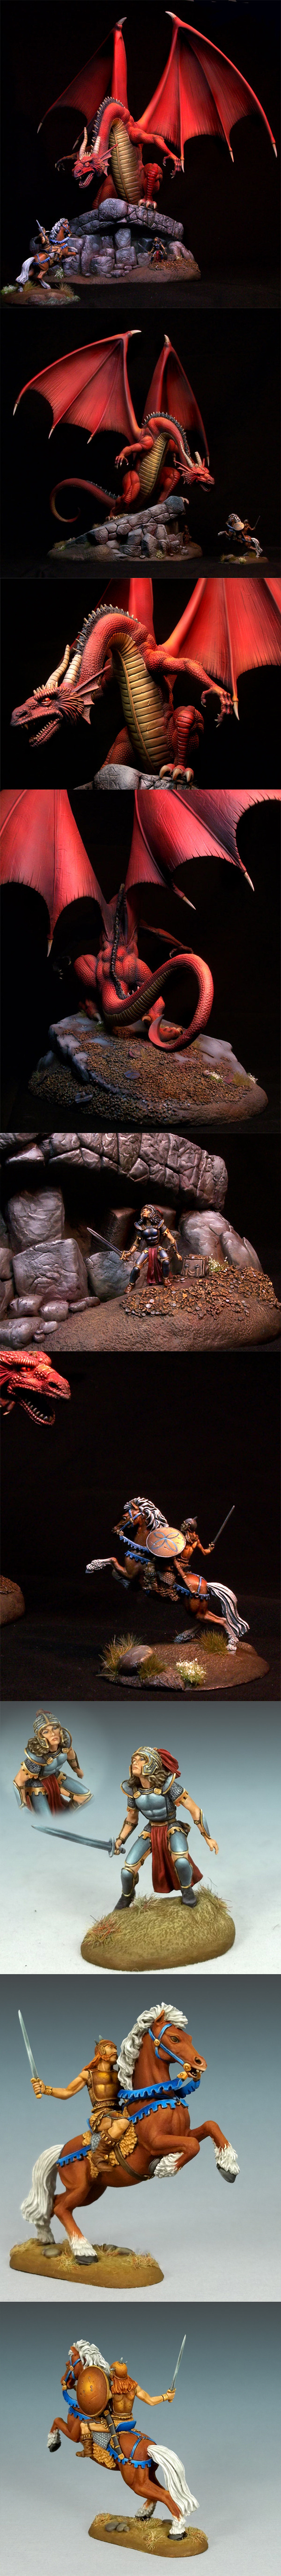 Painted Pictures from Aaron Lovejoy and Jessica Rich on this massive diorama project. The images of the adventurers at the bottom are to show what the models look like on their standard gaming bases if people want to go that route vs. the diorama bases.